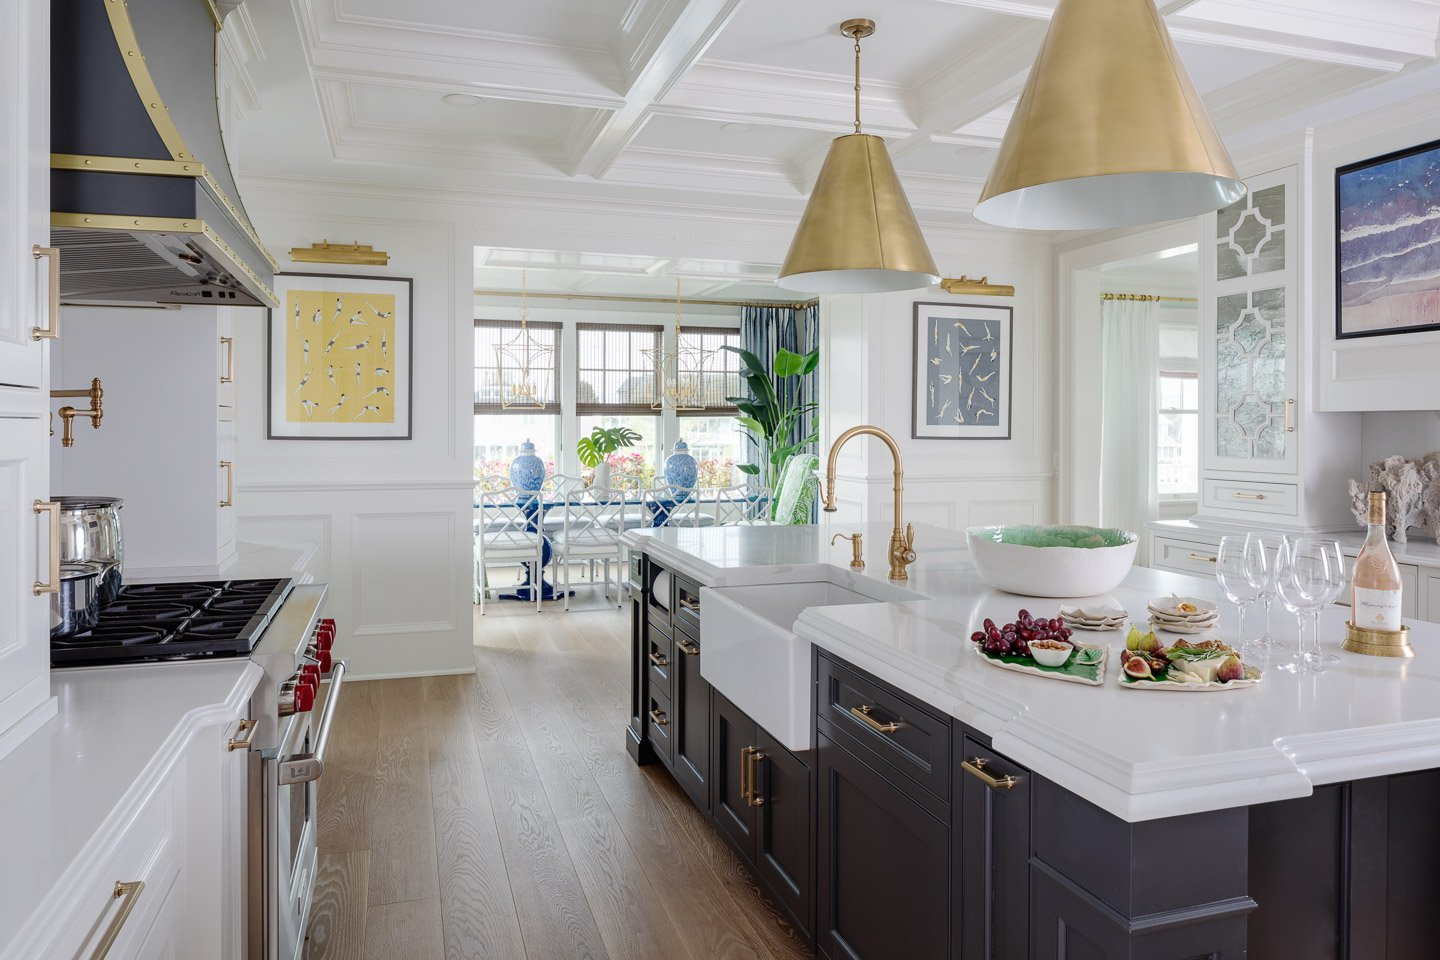 Blakely Interior Design | The Jersey Palm Project | The Kitchen